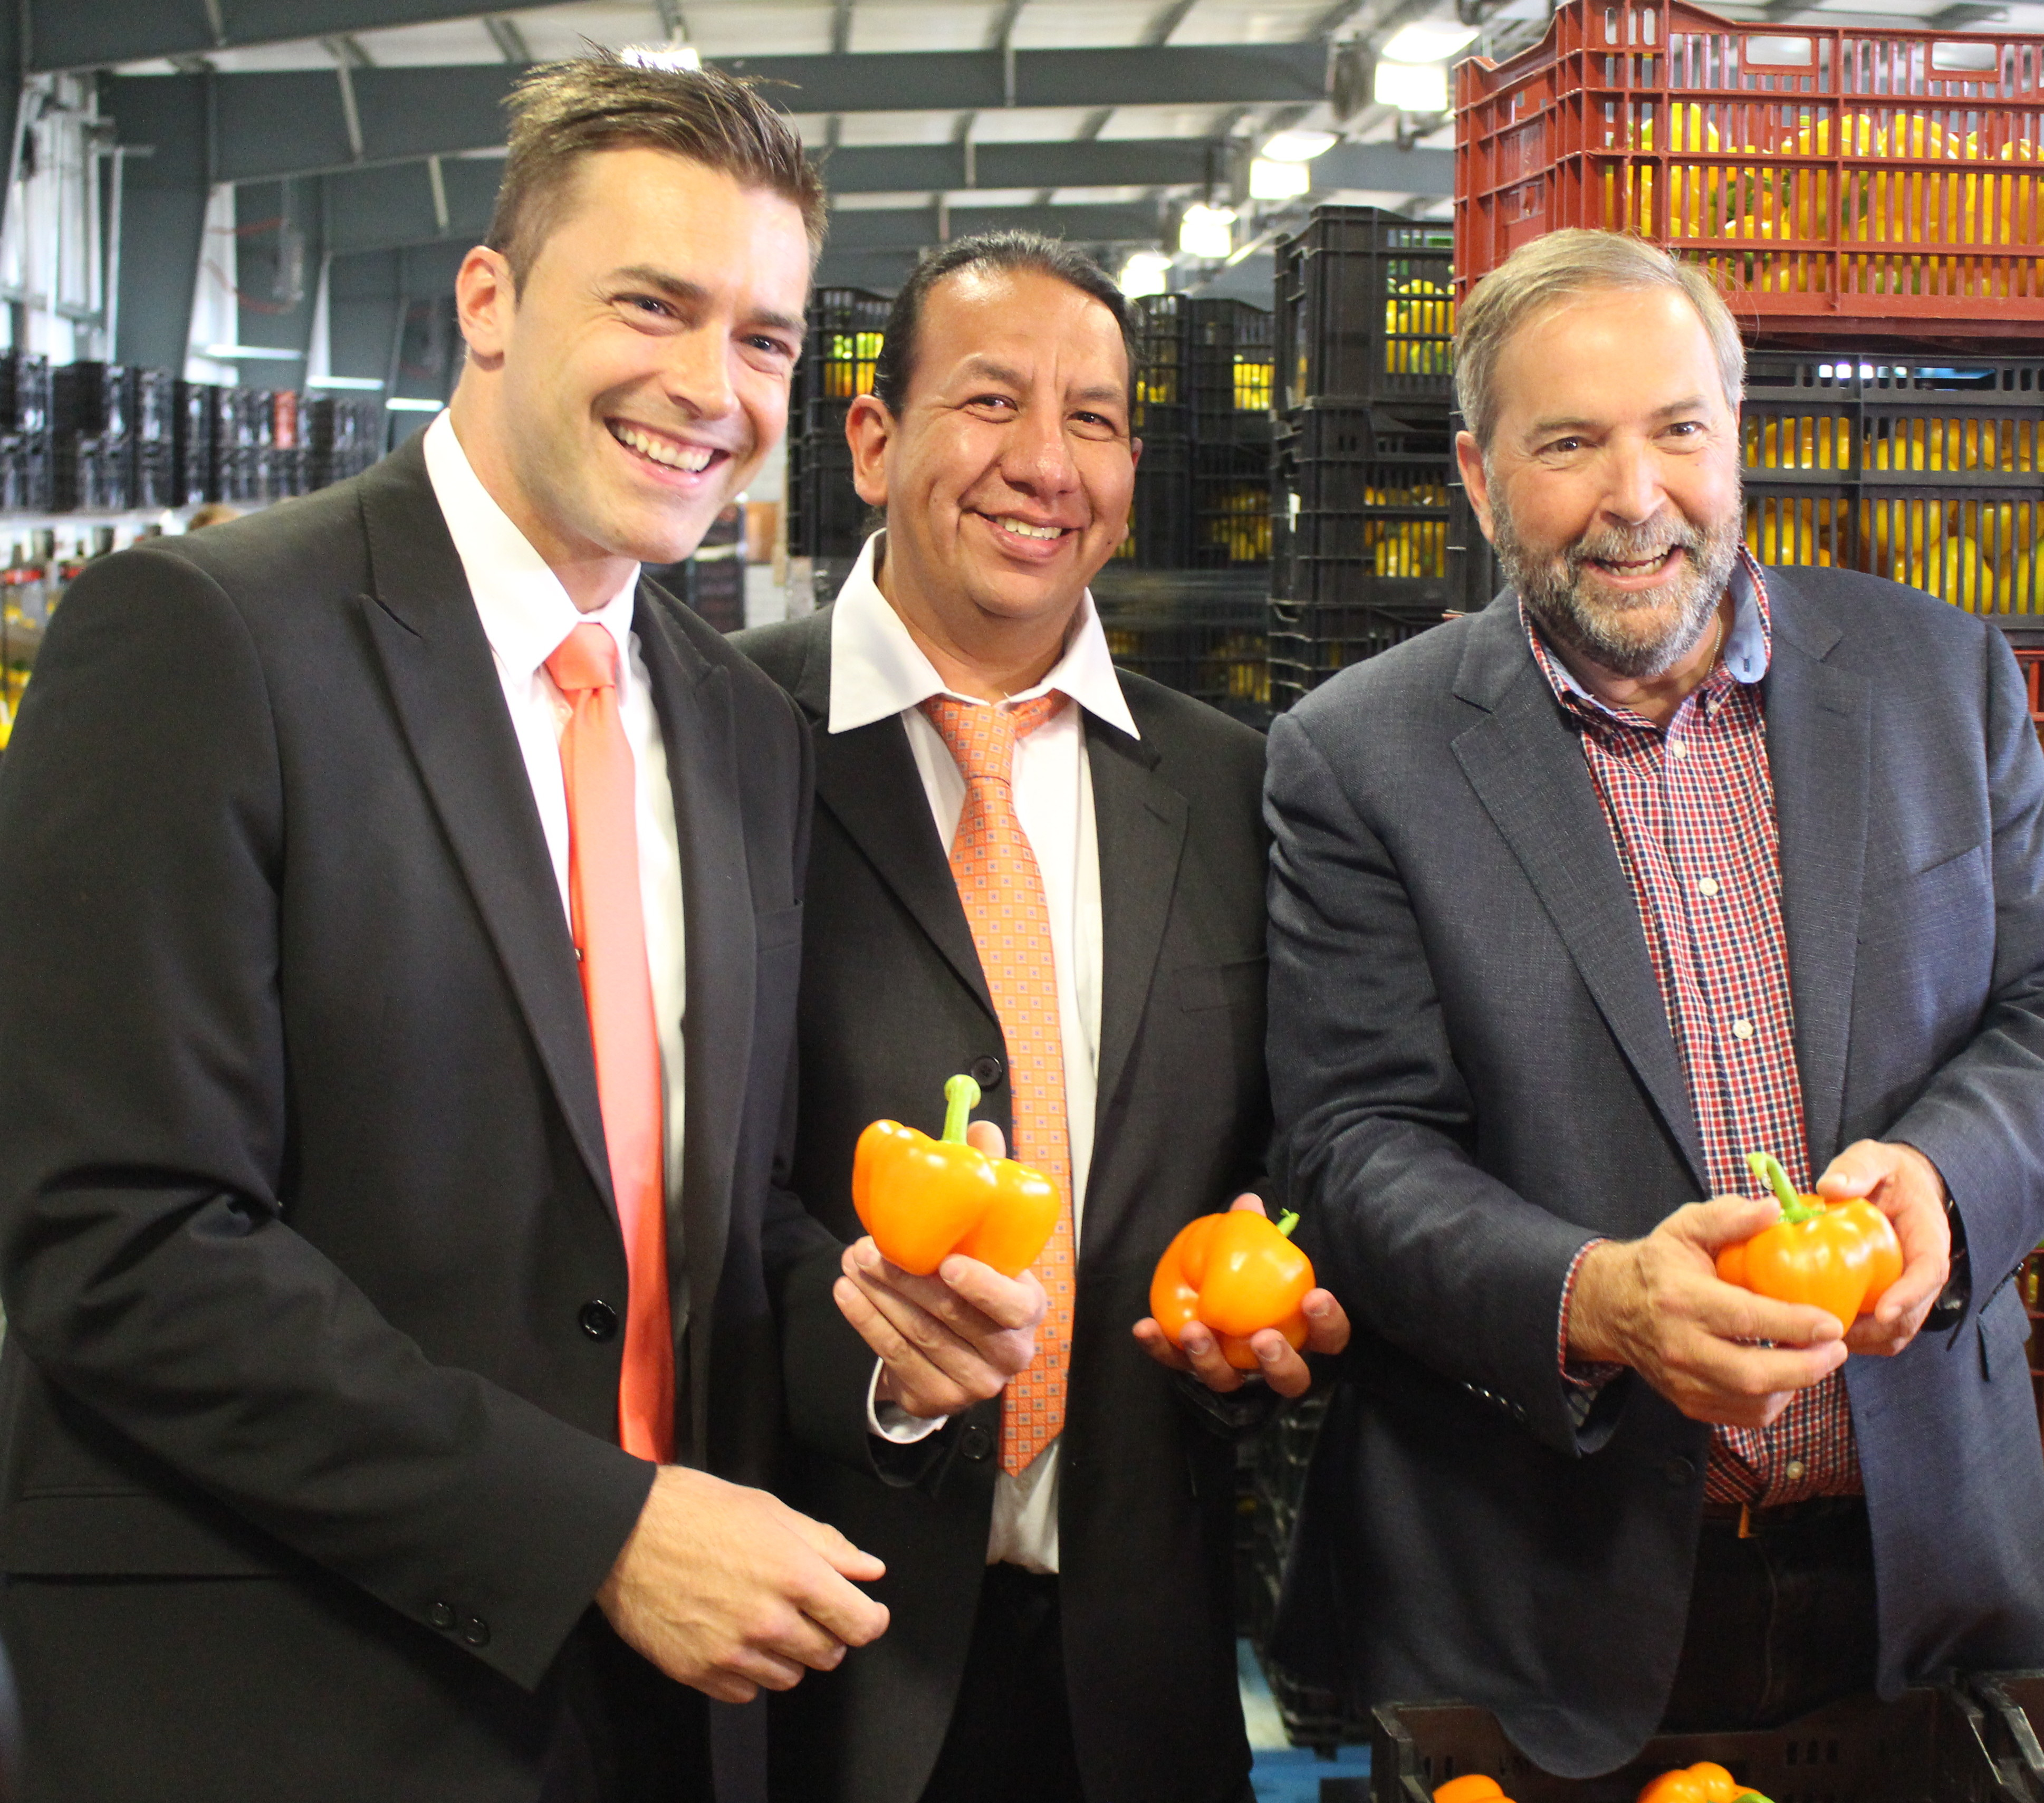 NDP Leader Tom Mulcair visits a pepper farm in Chatham-Kent, July 22, 2015. (Photo by Mike Vlasveld)